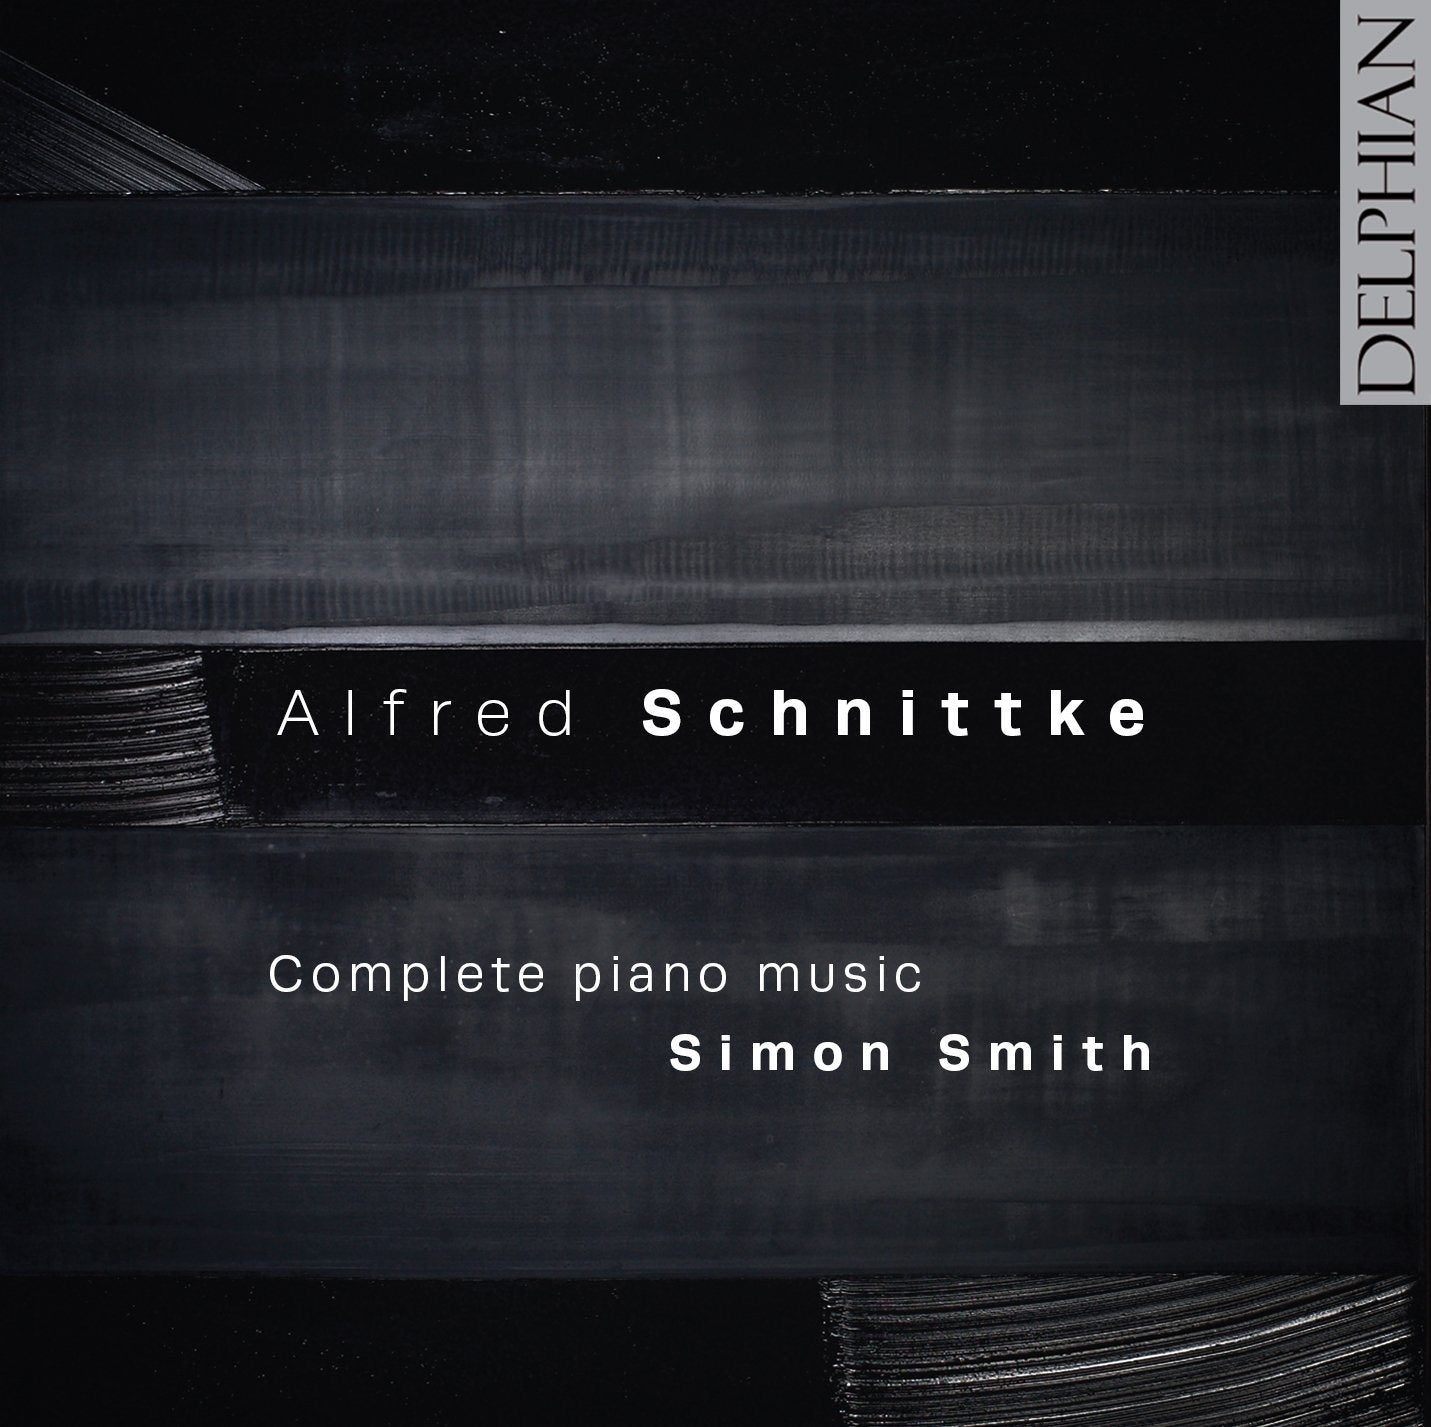 Alfred Schnittke: Complete piano music (2CD) CD Delphian Records